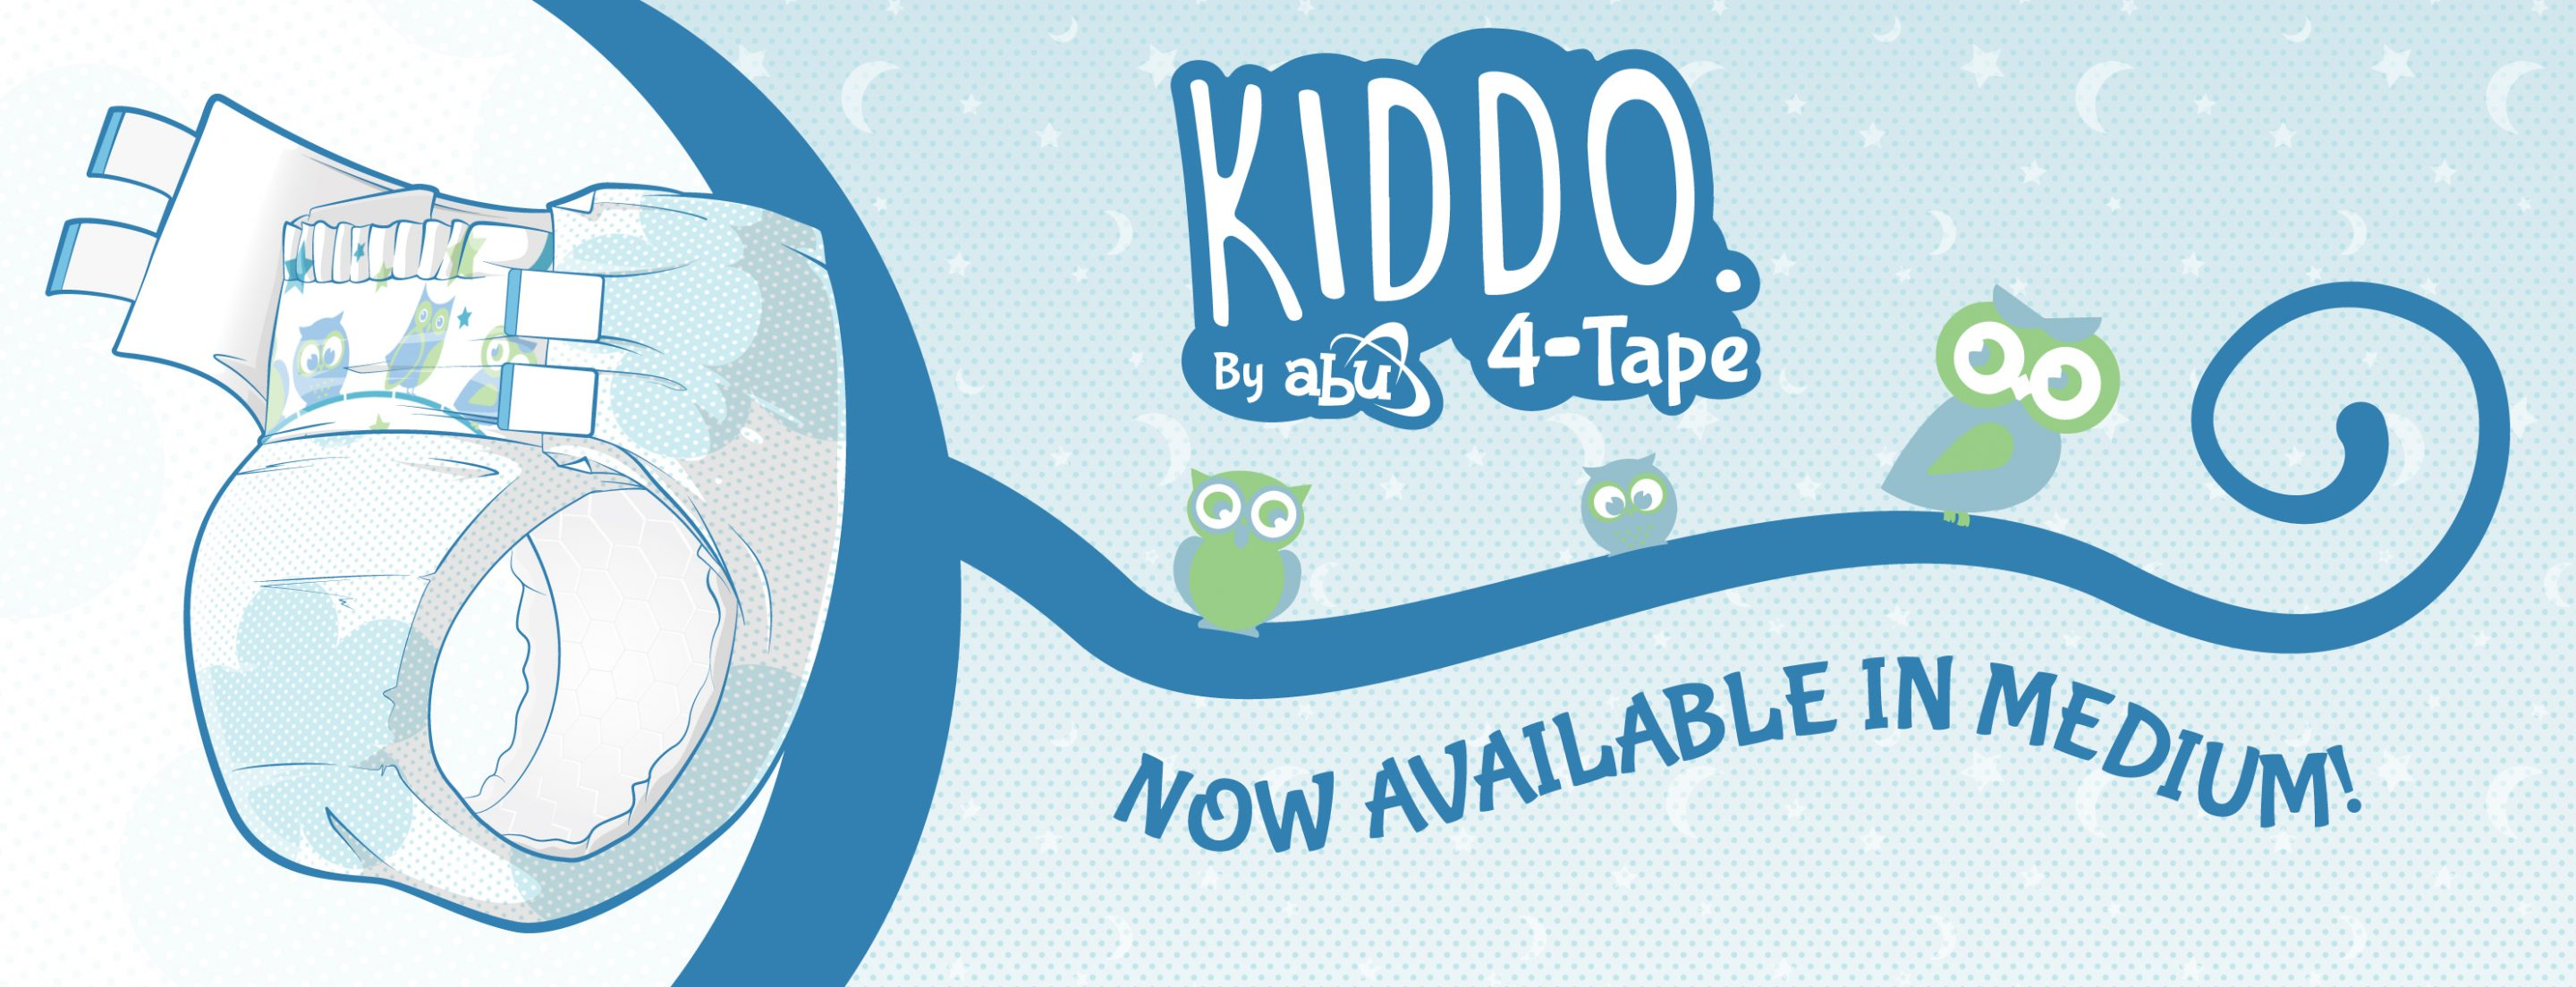 Kiddo By ABU 4-Tape Release